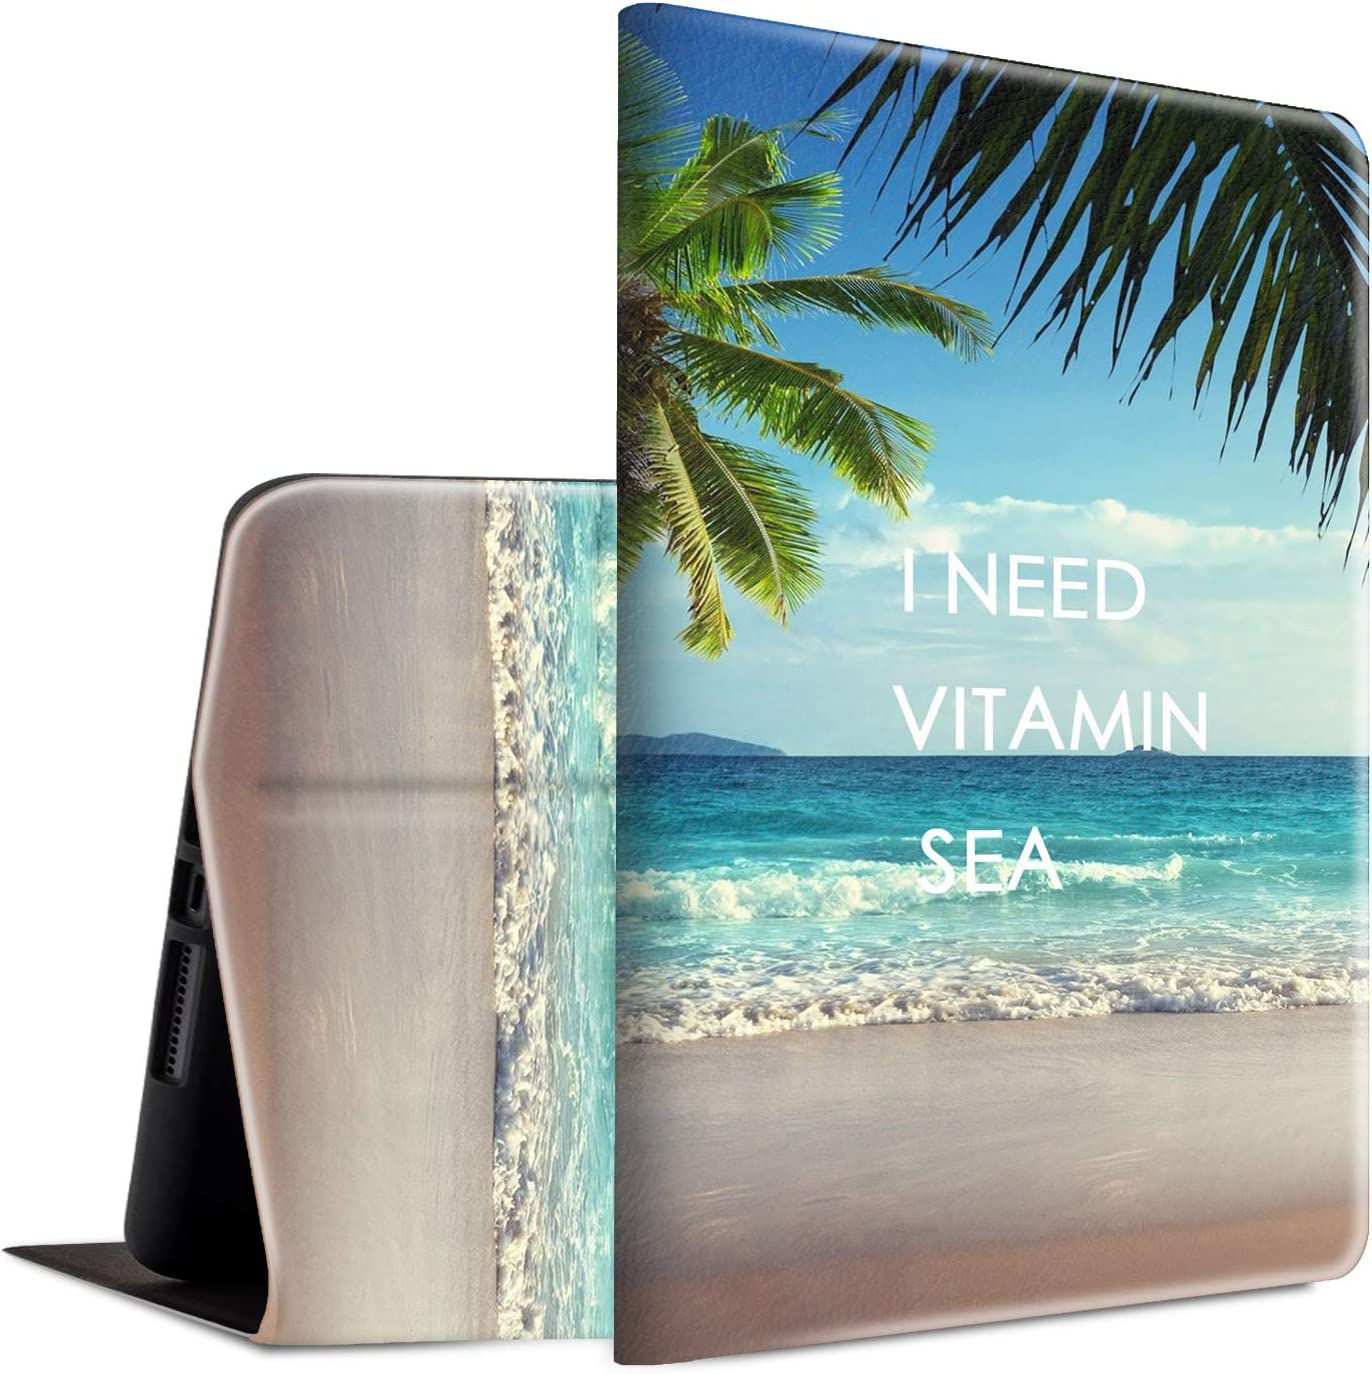 Case for New iPad 8th/7th Generation, iPad 10.2 2020/2019 Case, Spsun Lightweight PU Leather Cover Adjustable Stand with Auto Wake/Sleep Smart Protect Case - I Need Vitamin Sea Palm Tree